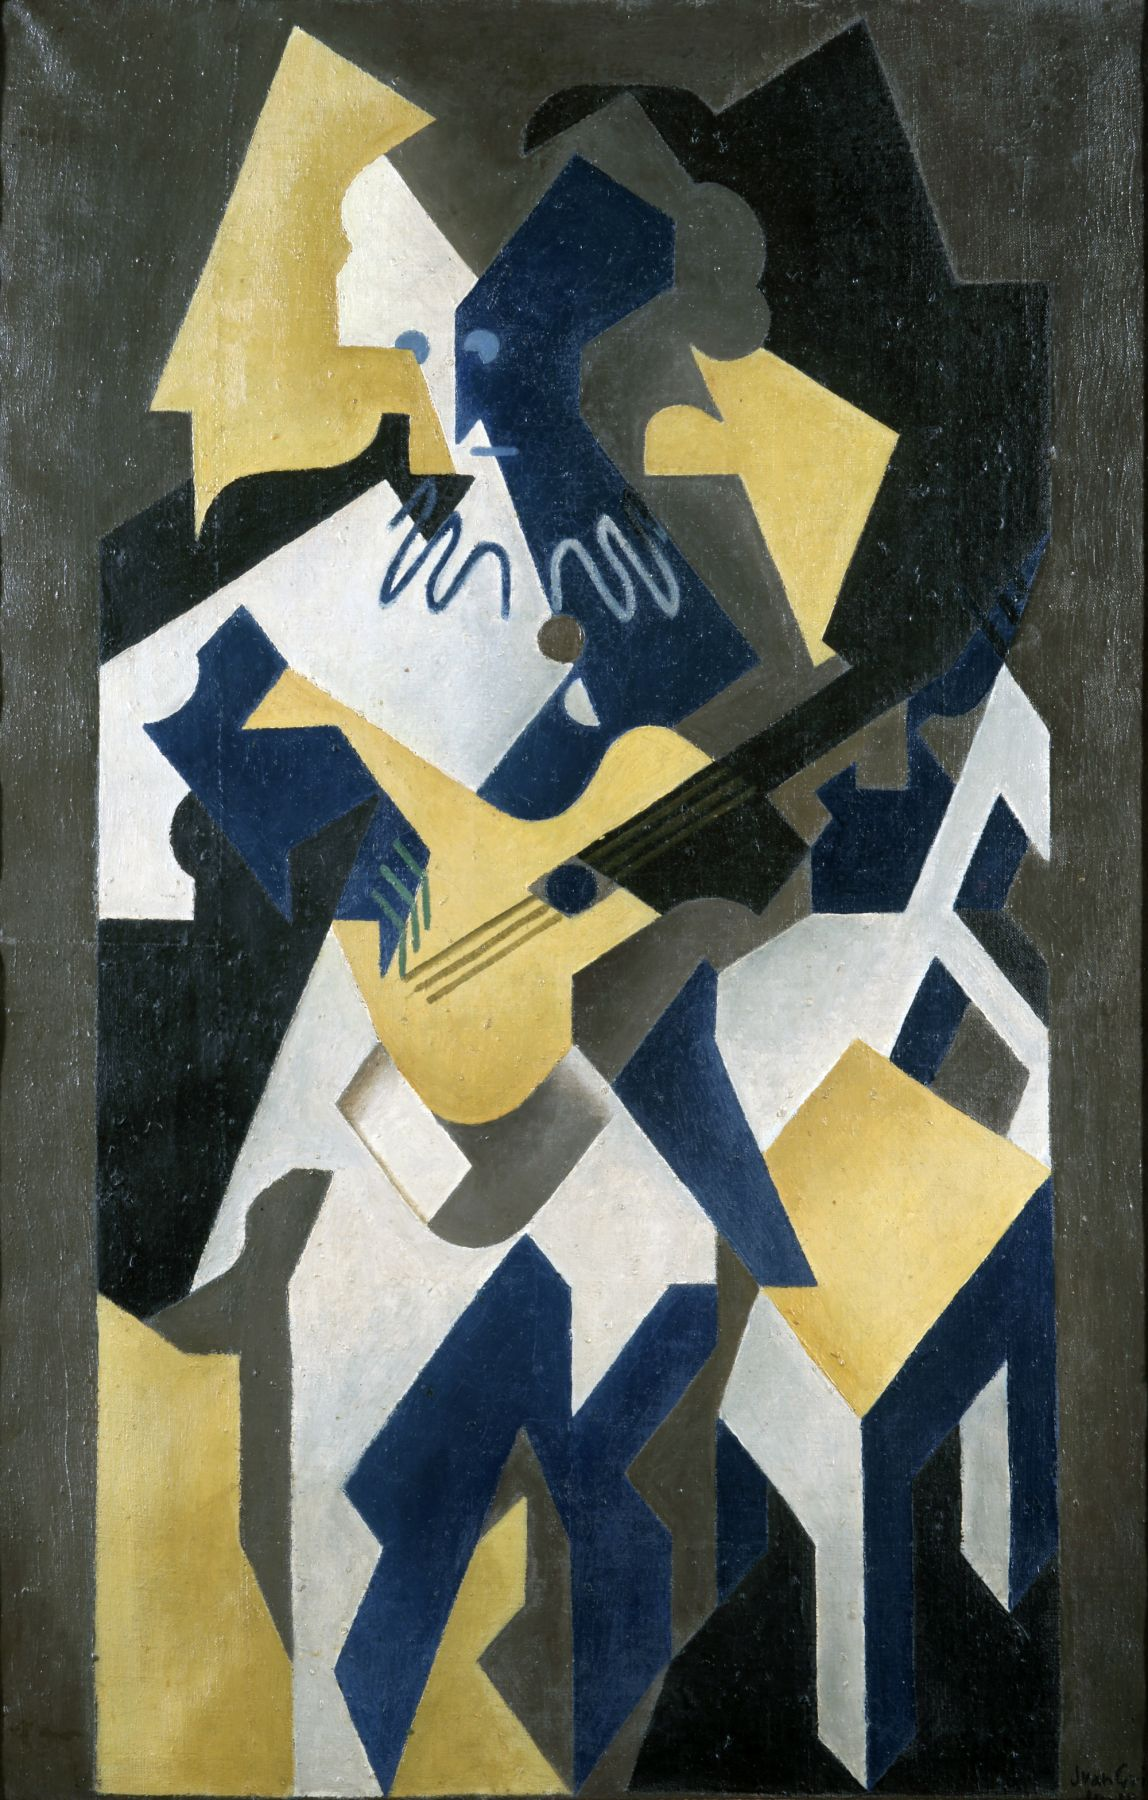 Juan Gris, Arlequin à la Guitare, 1918 Oil on canvas 100 x 65 cm. (39.4 x 25.6 in.) This painting is in white, yellow, blue, grey and black tons, it represents in a cubist manner Harlequin playing the guitar.